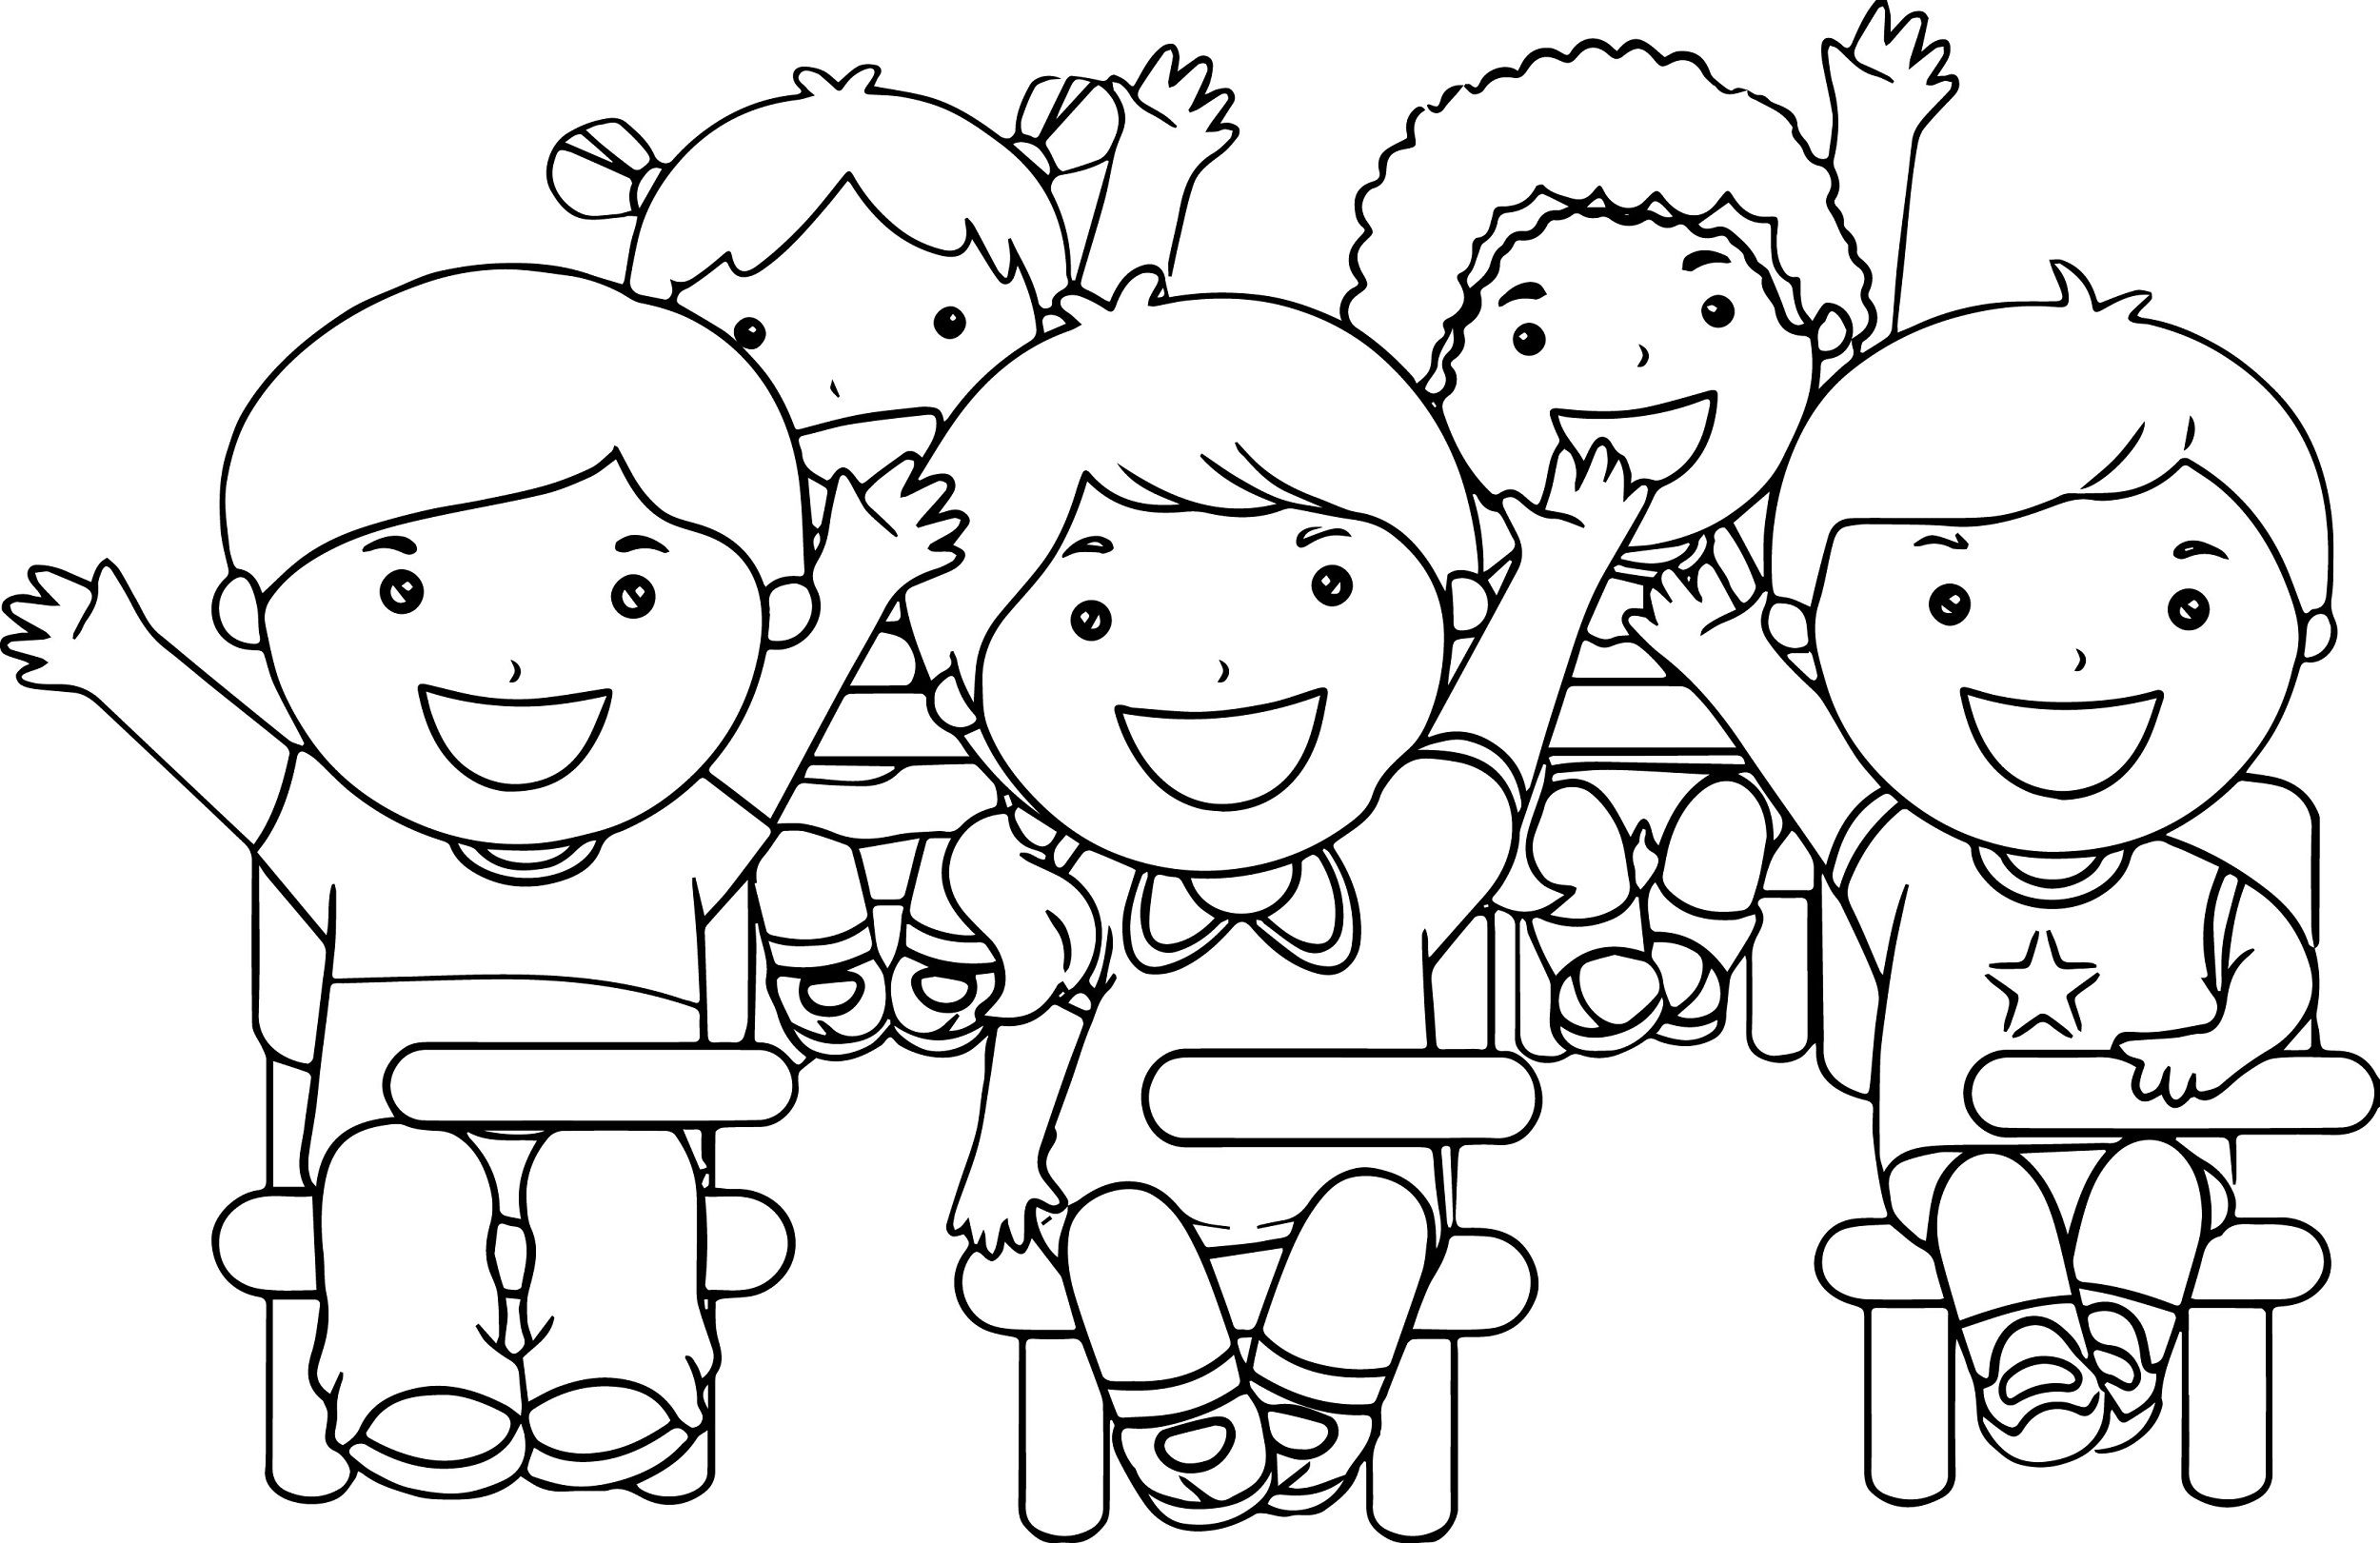 Classroom Coloring Pages For Kids / Free, printable ...